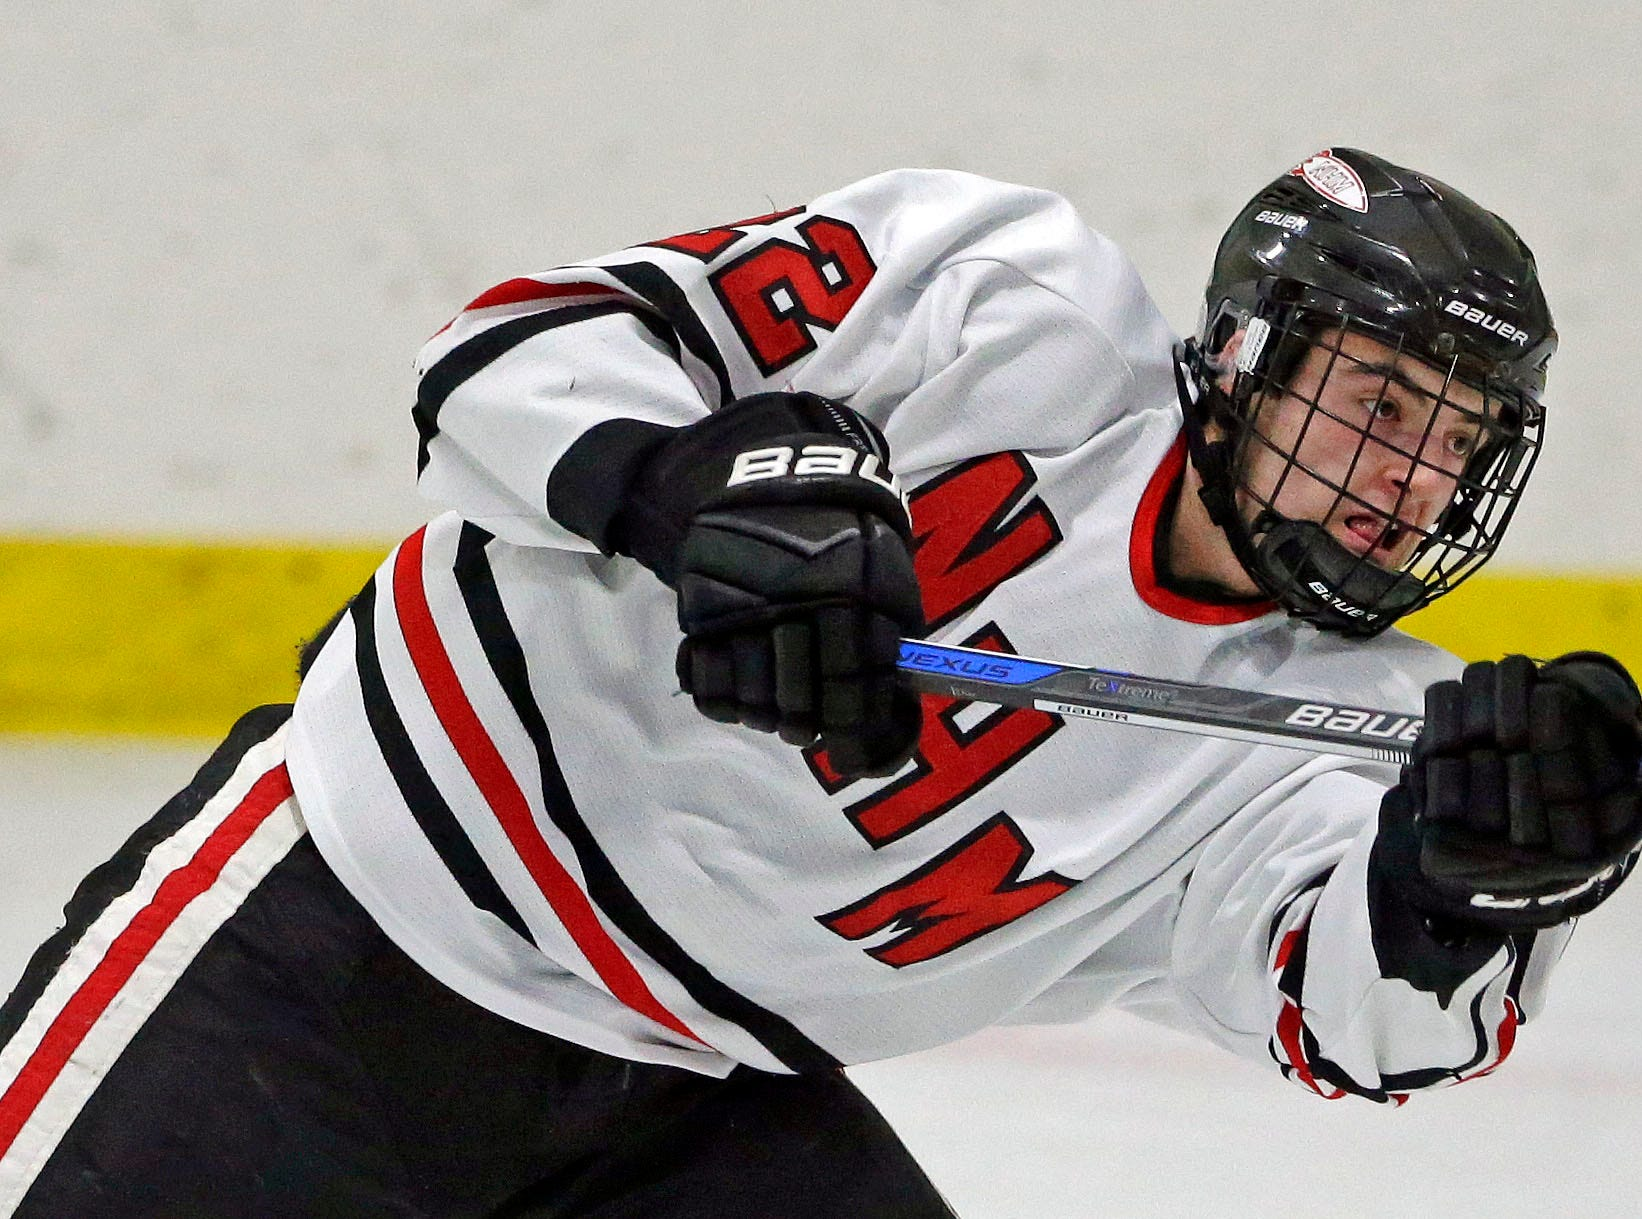 Mason Marquardt of Neenah/Hortonville/Menasha scores a goal against Oshkosh in a Badgerland Conference hockey game Tuesday, December 4, 2018, at Tri-County Ice Arena in Fox Crossing, Wis.Ron Page/USA TODAY NETWORK-Wisconsin